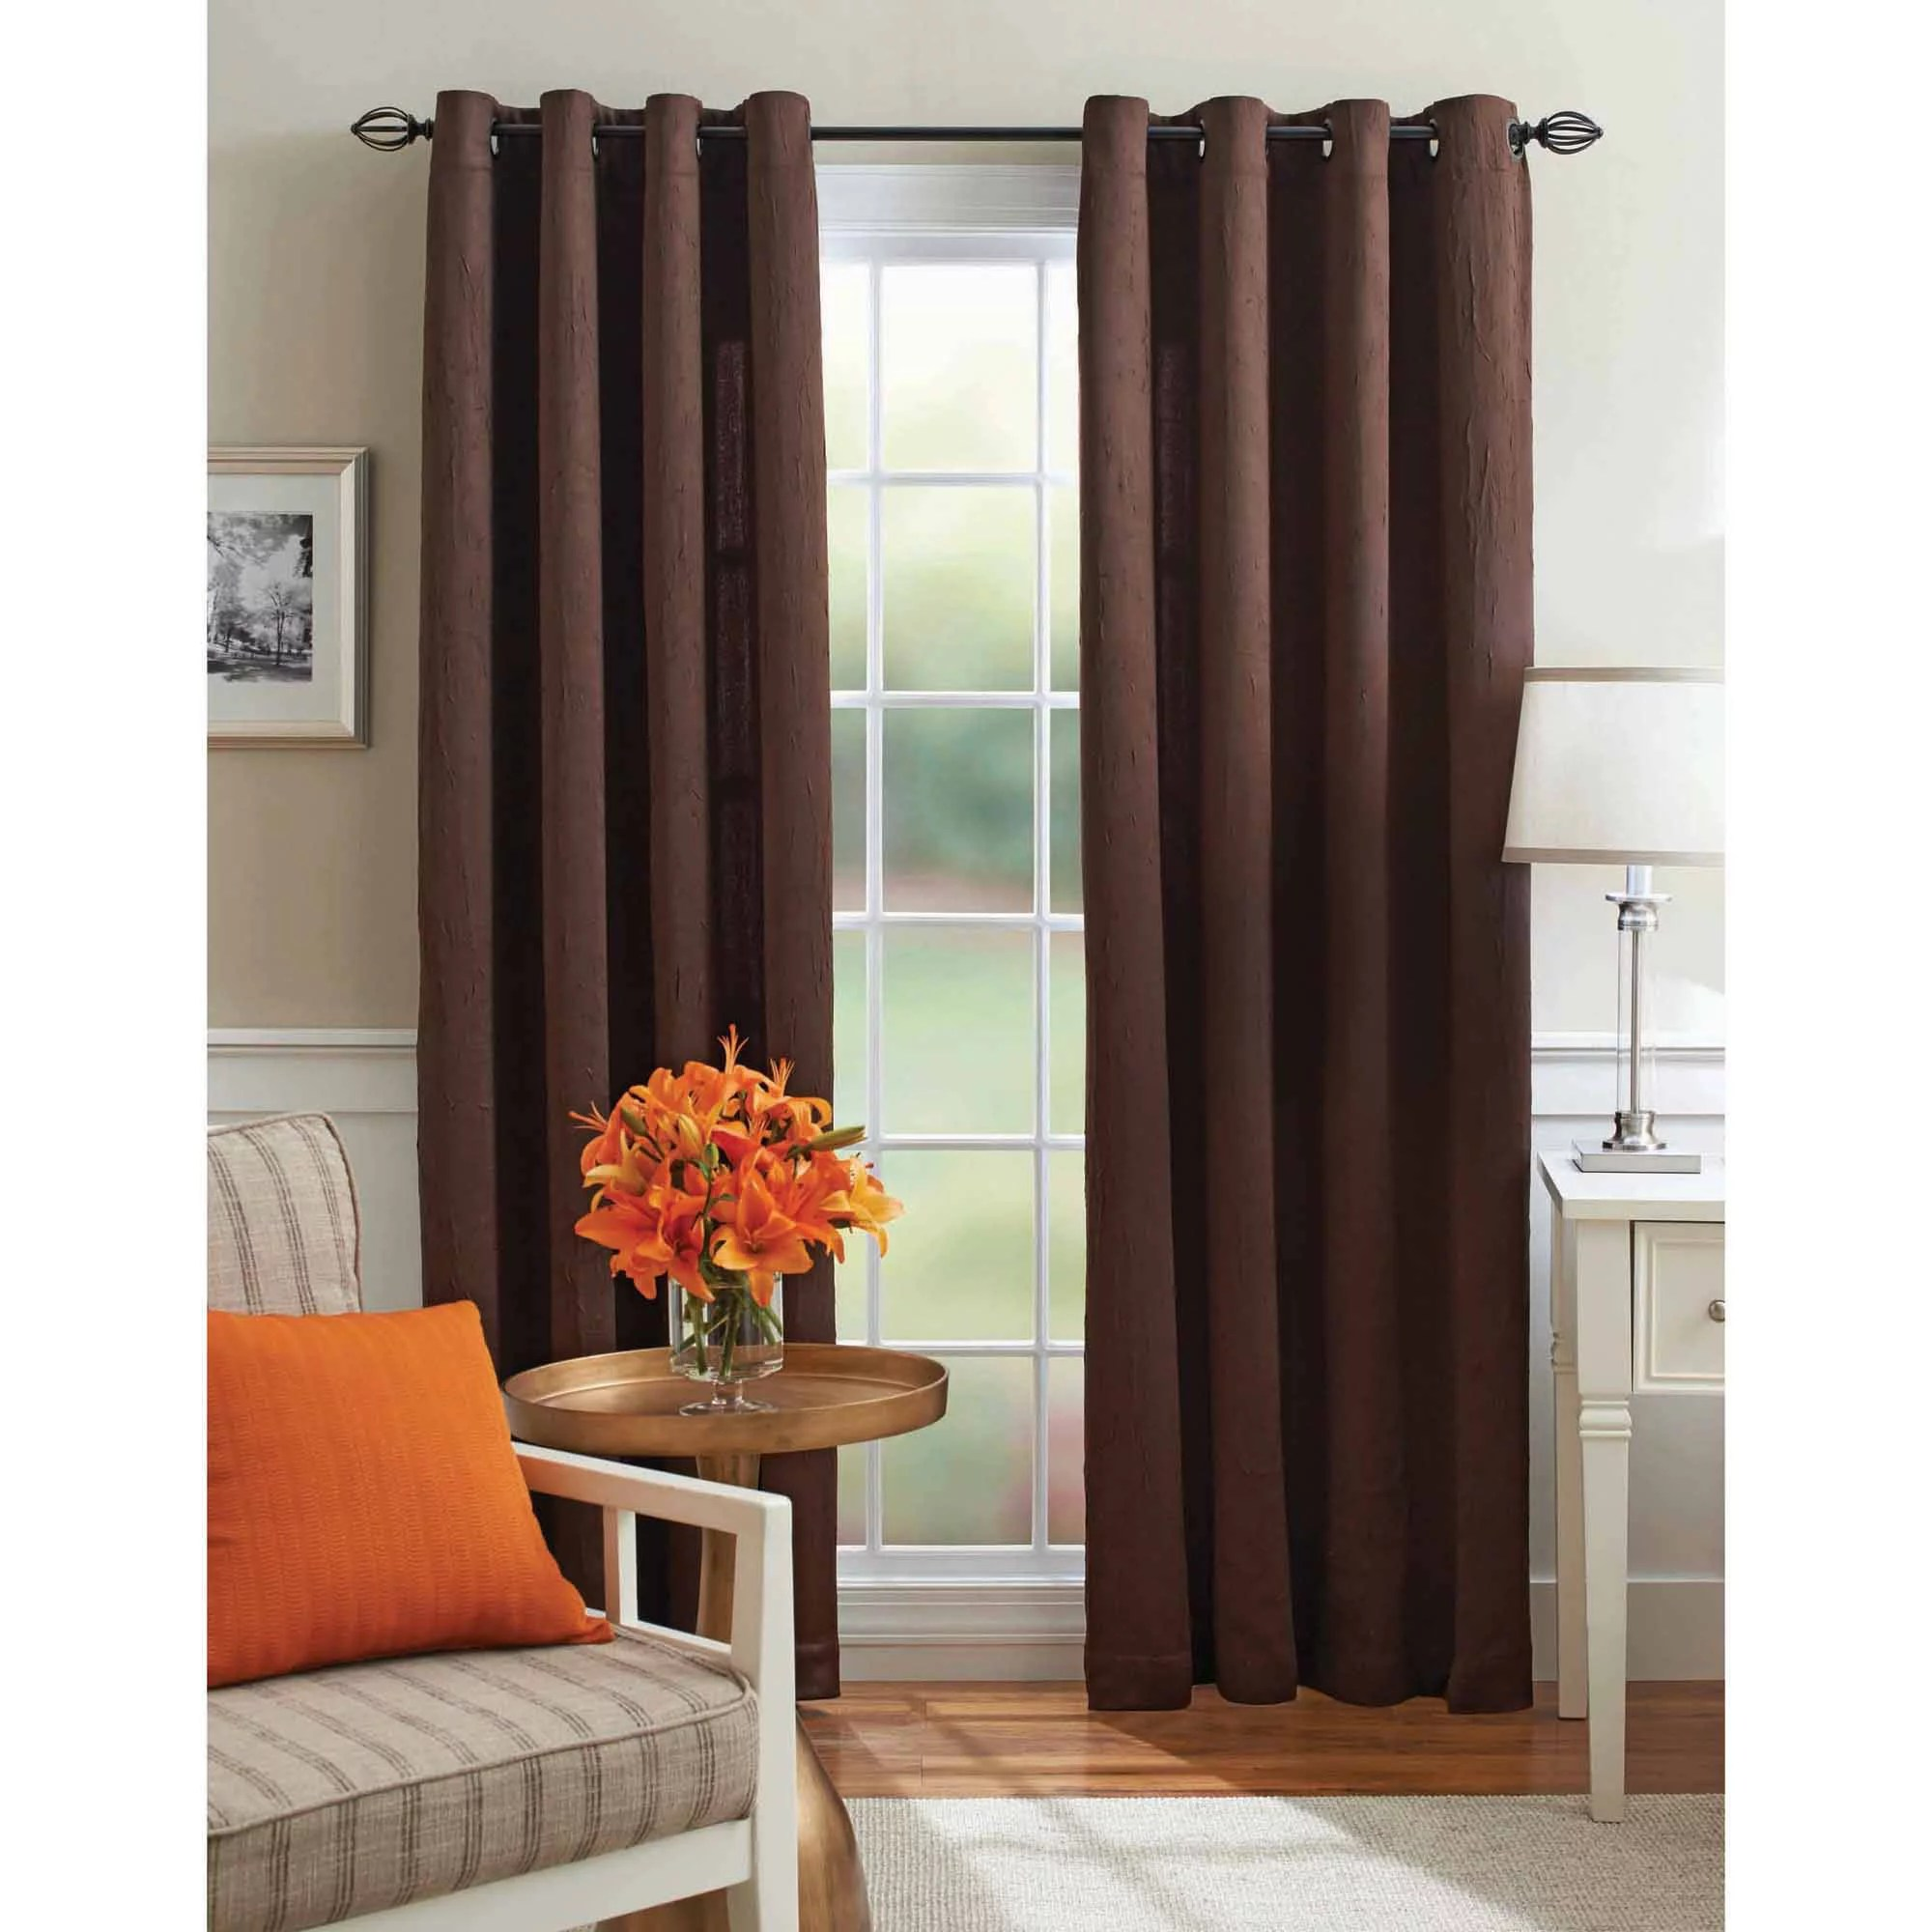 Curtains For Sale At Walmart Better Homes Gardens Embroidered Sheer Curtain Panel